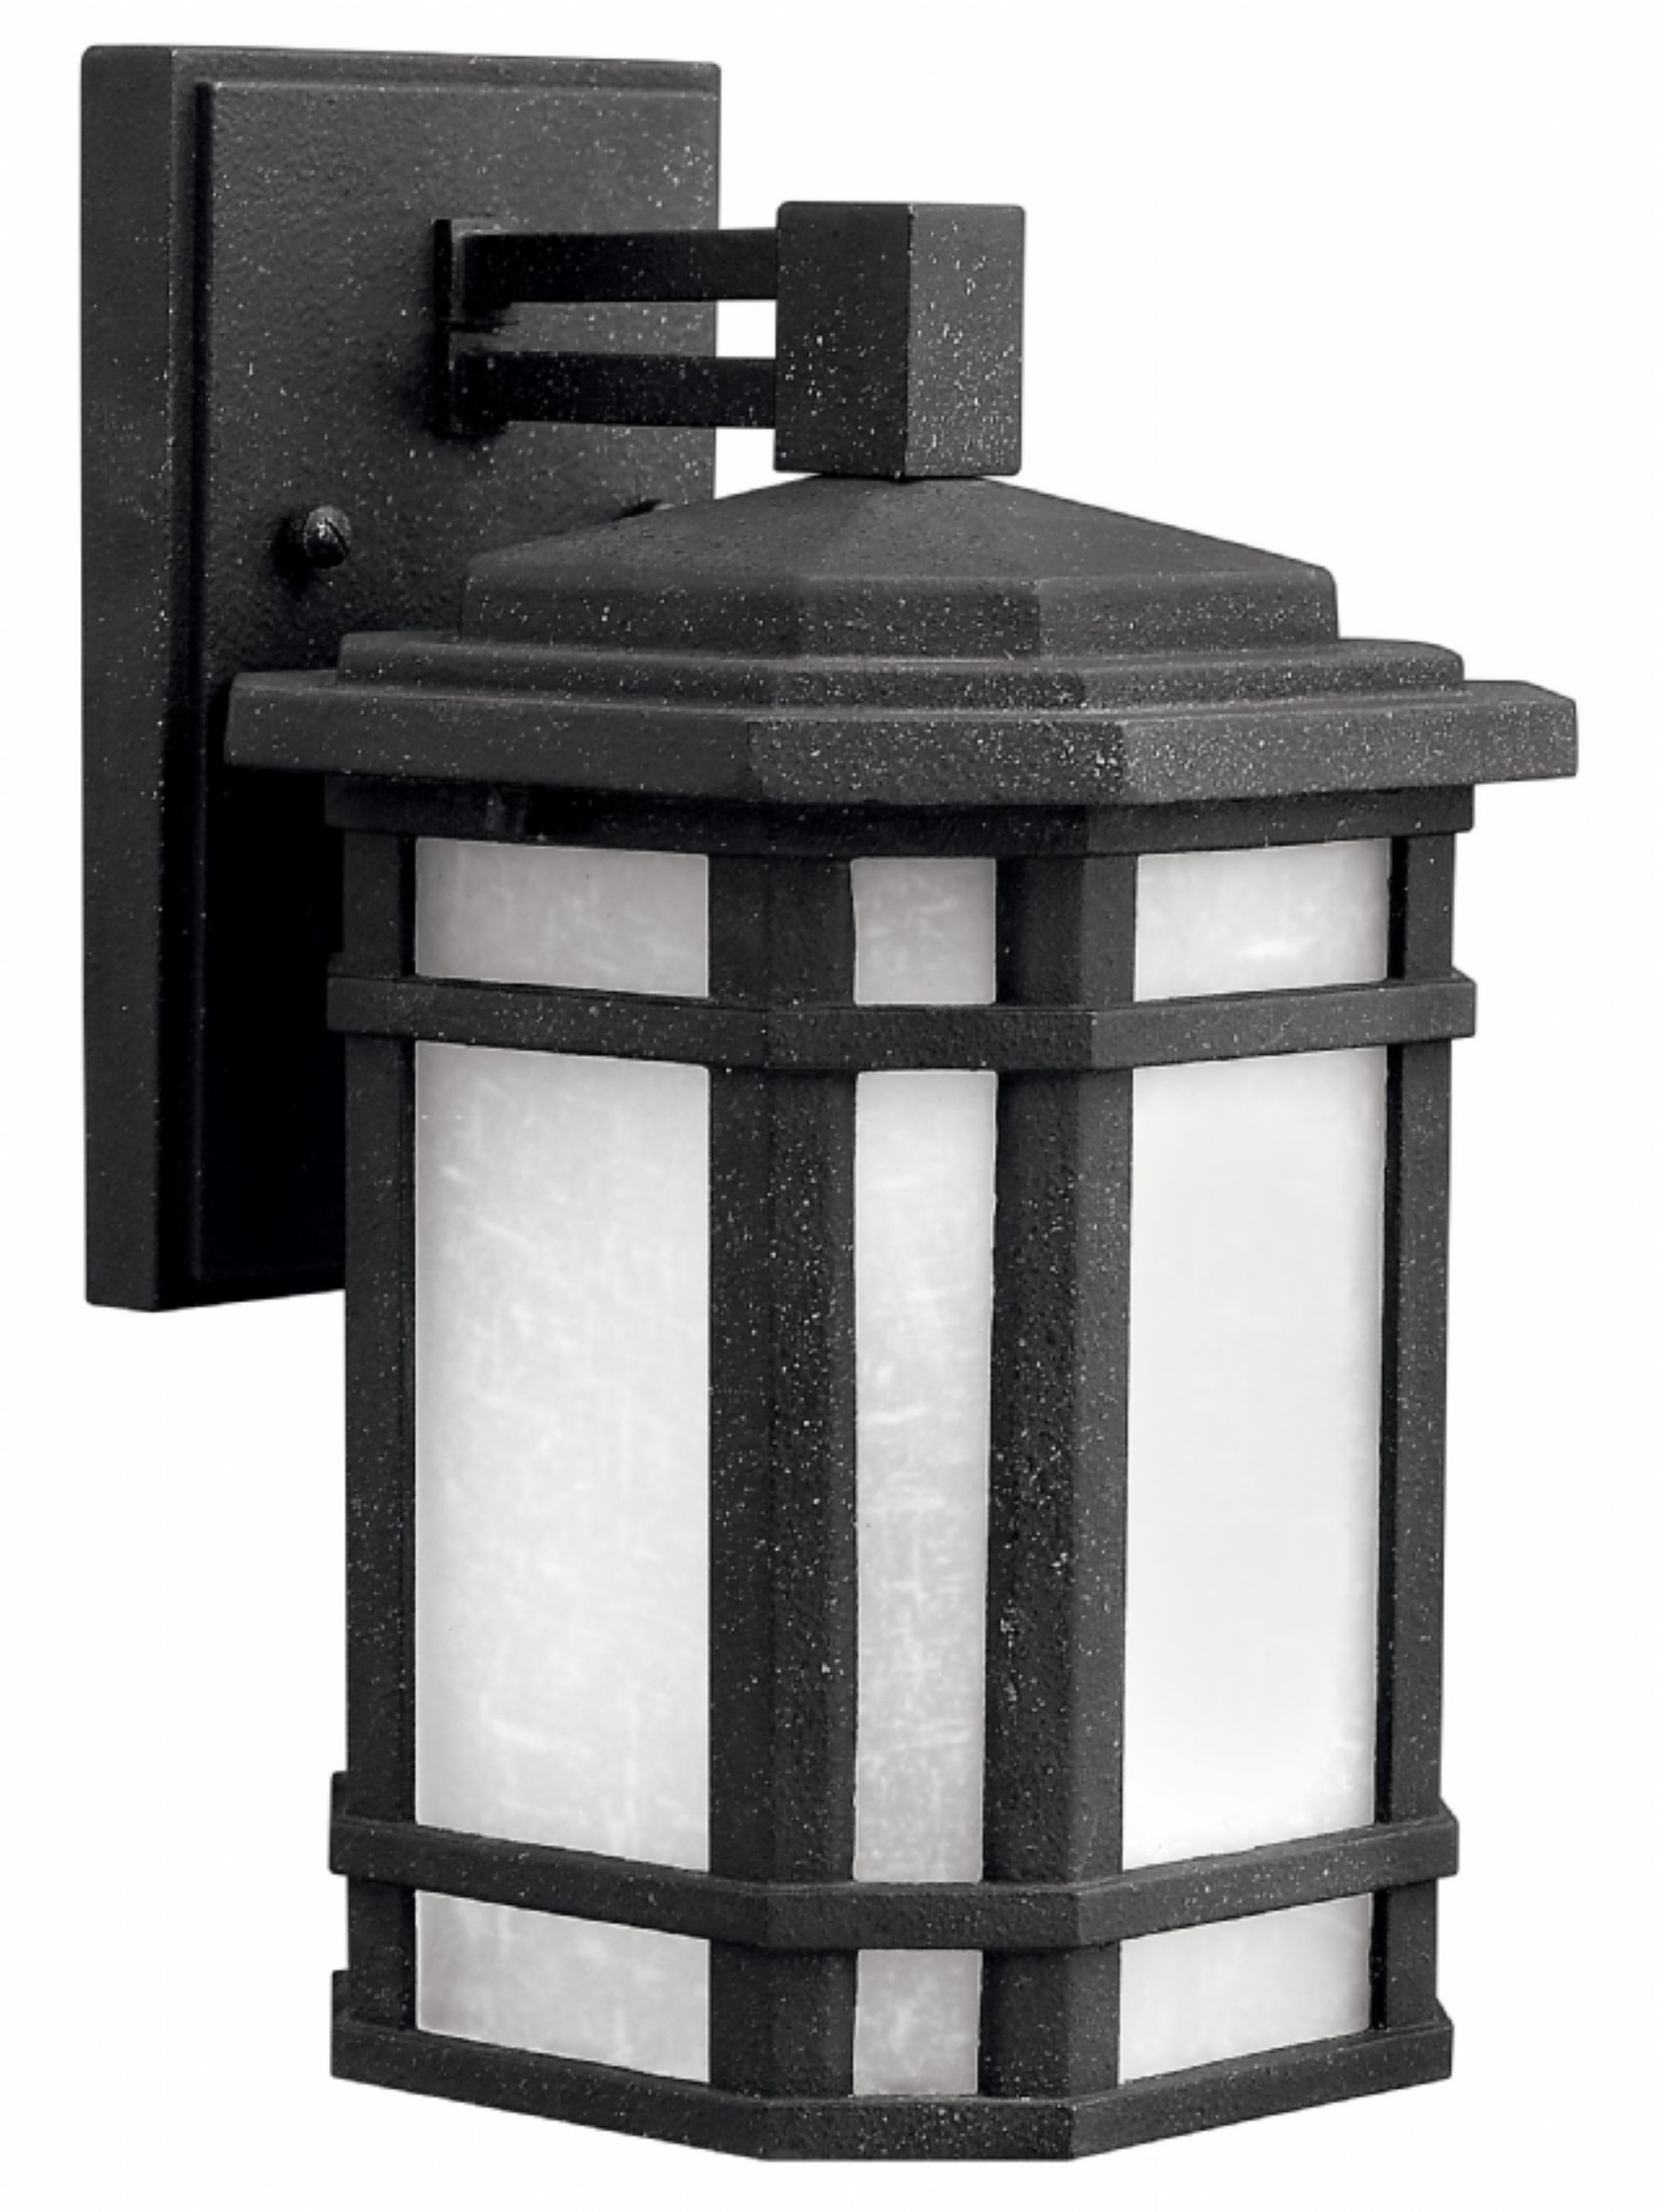 Newest Outdoor Lighting Japanese Lanterns With Vintage Black Cherry Creek > Exterior Wall Mount (View 14 of 20)